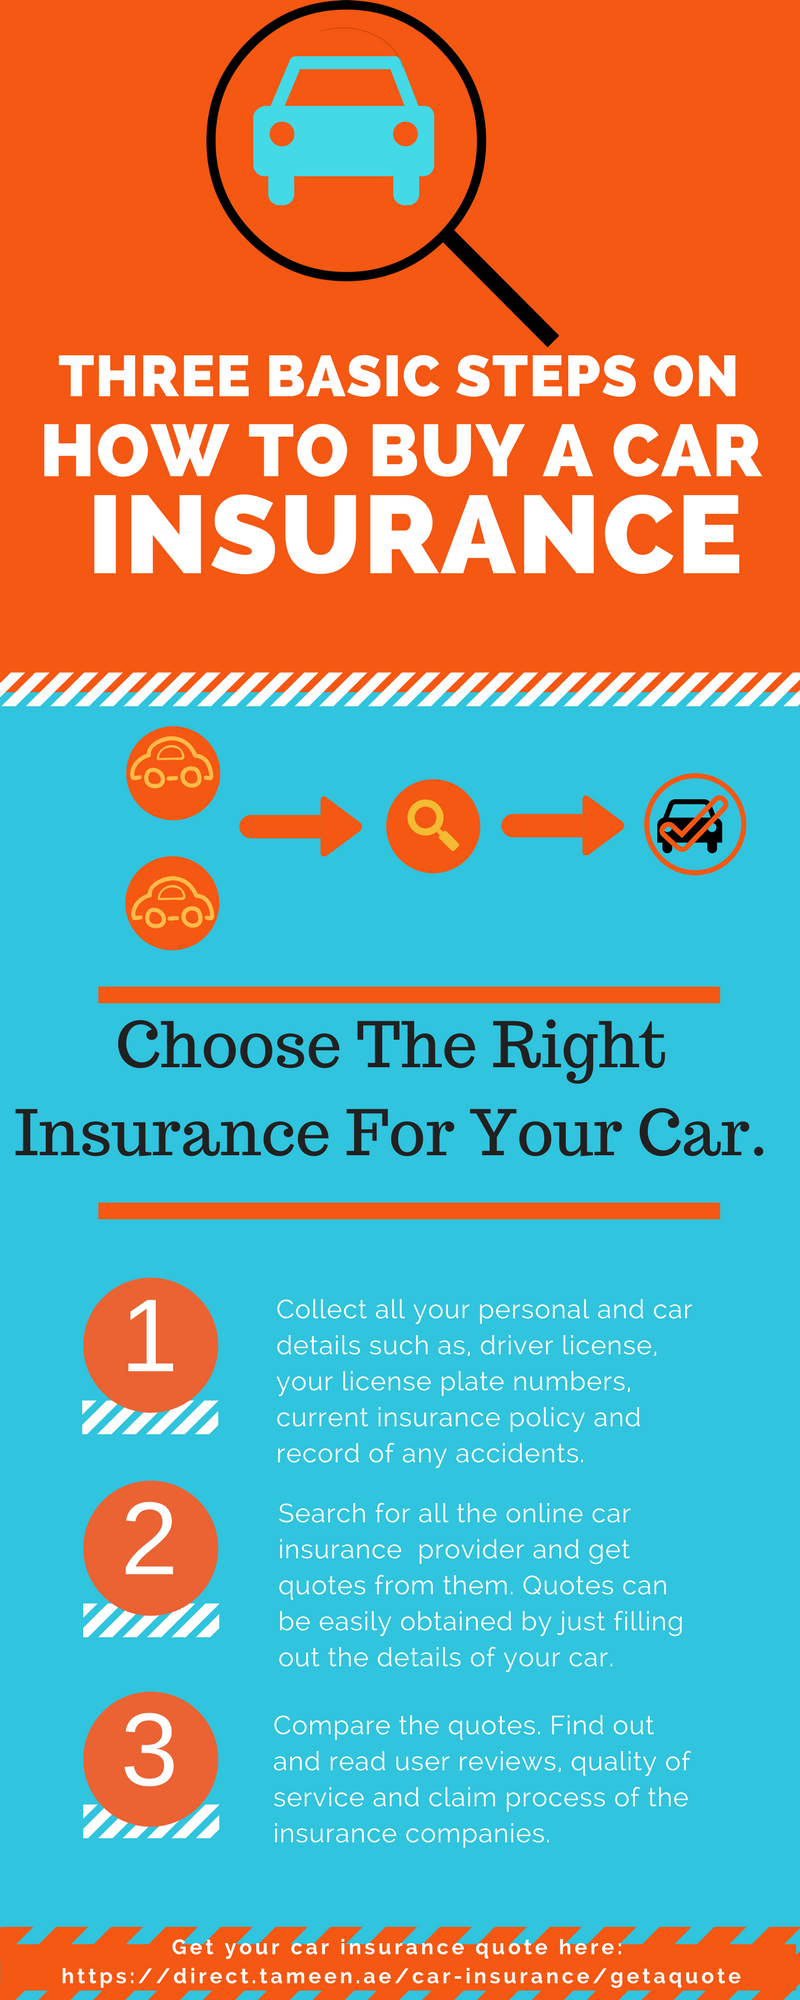 Here Is An Infographics About How To Buy Car Insurance Insurance